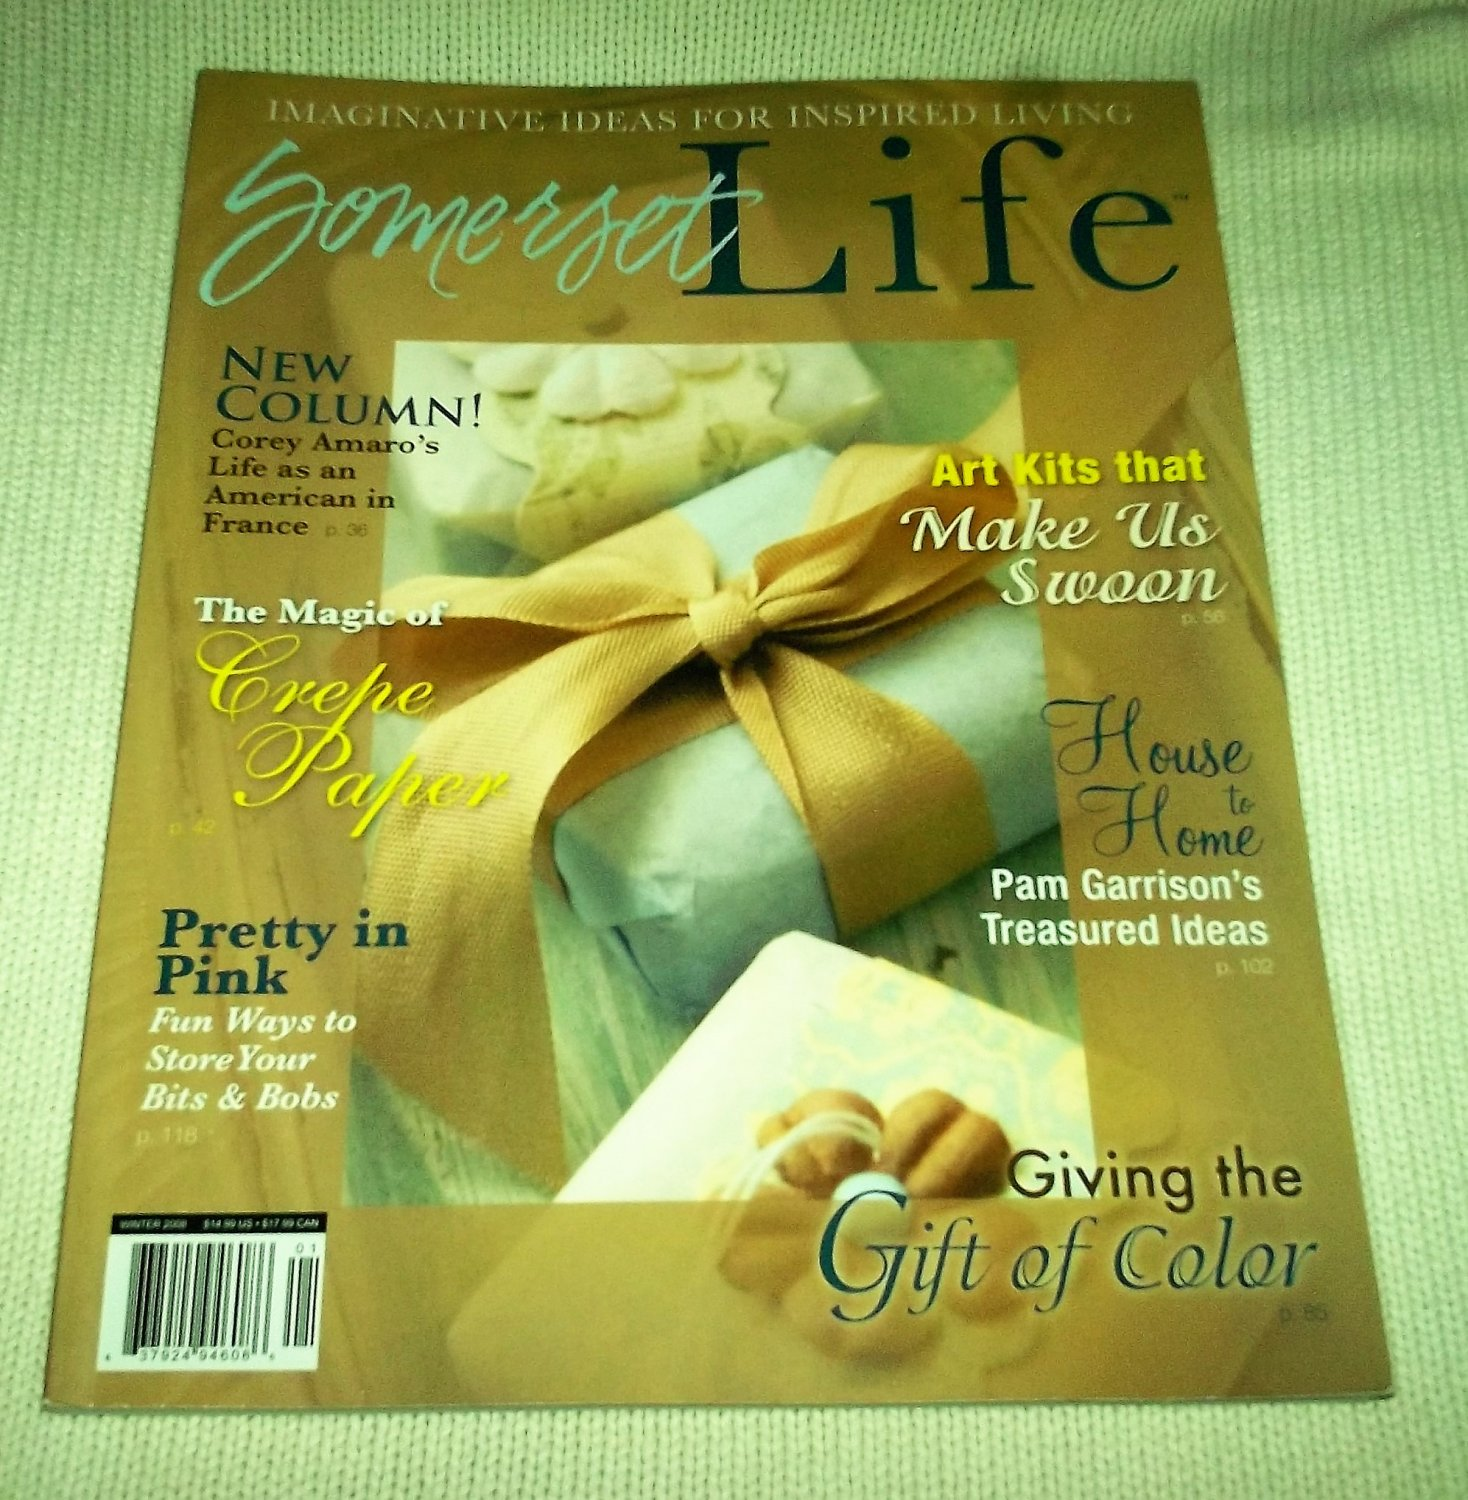 SOMERSET Life MAGAZINE Winter 2008 Creative Blogging MIXED MEDIA ALTERED ART